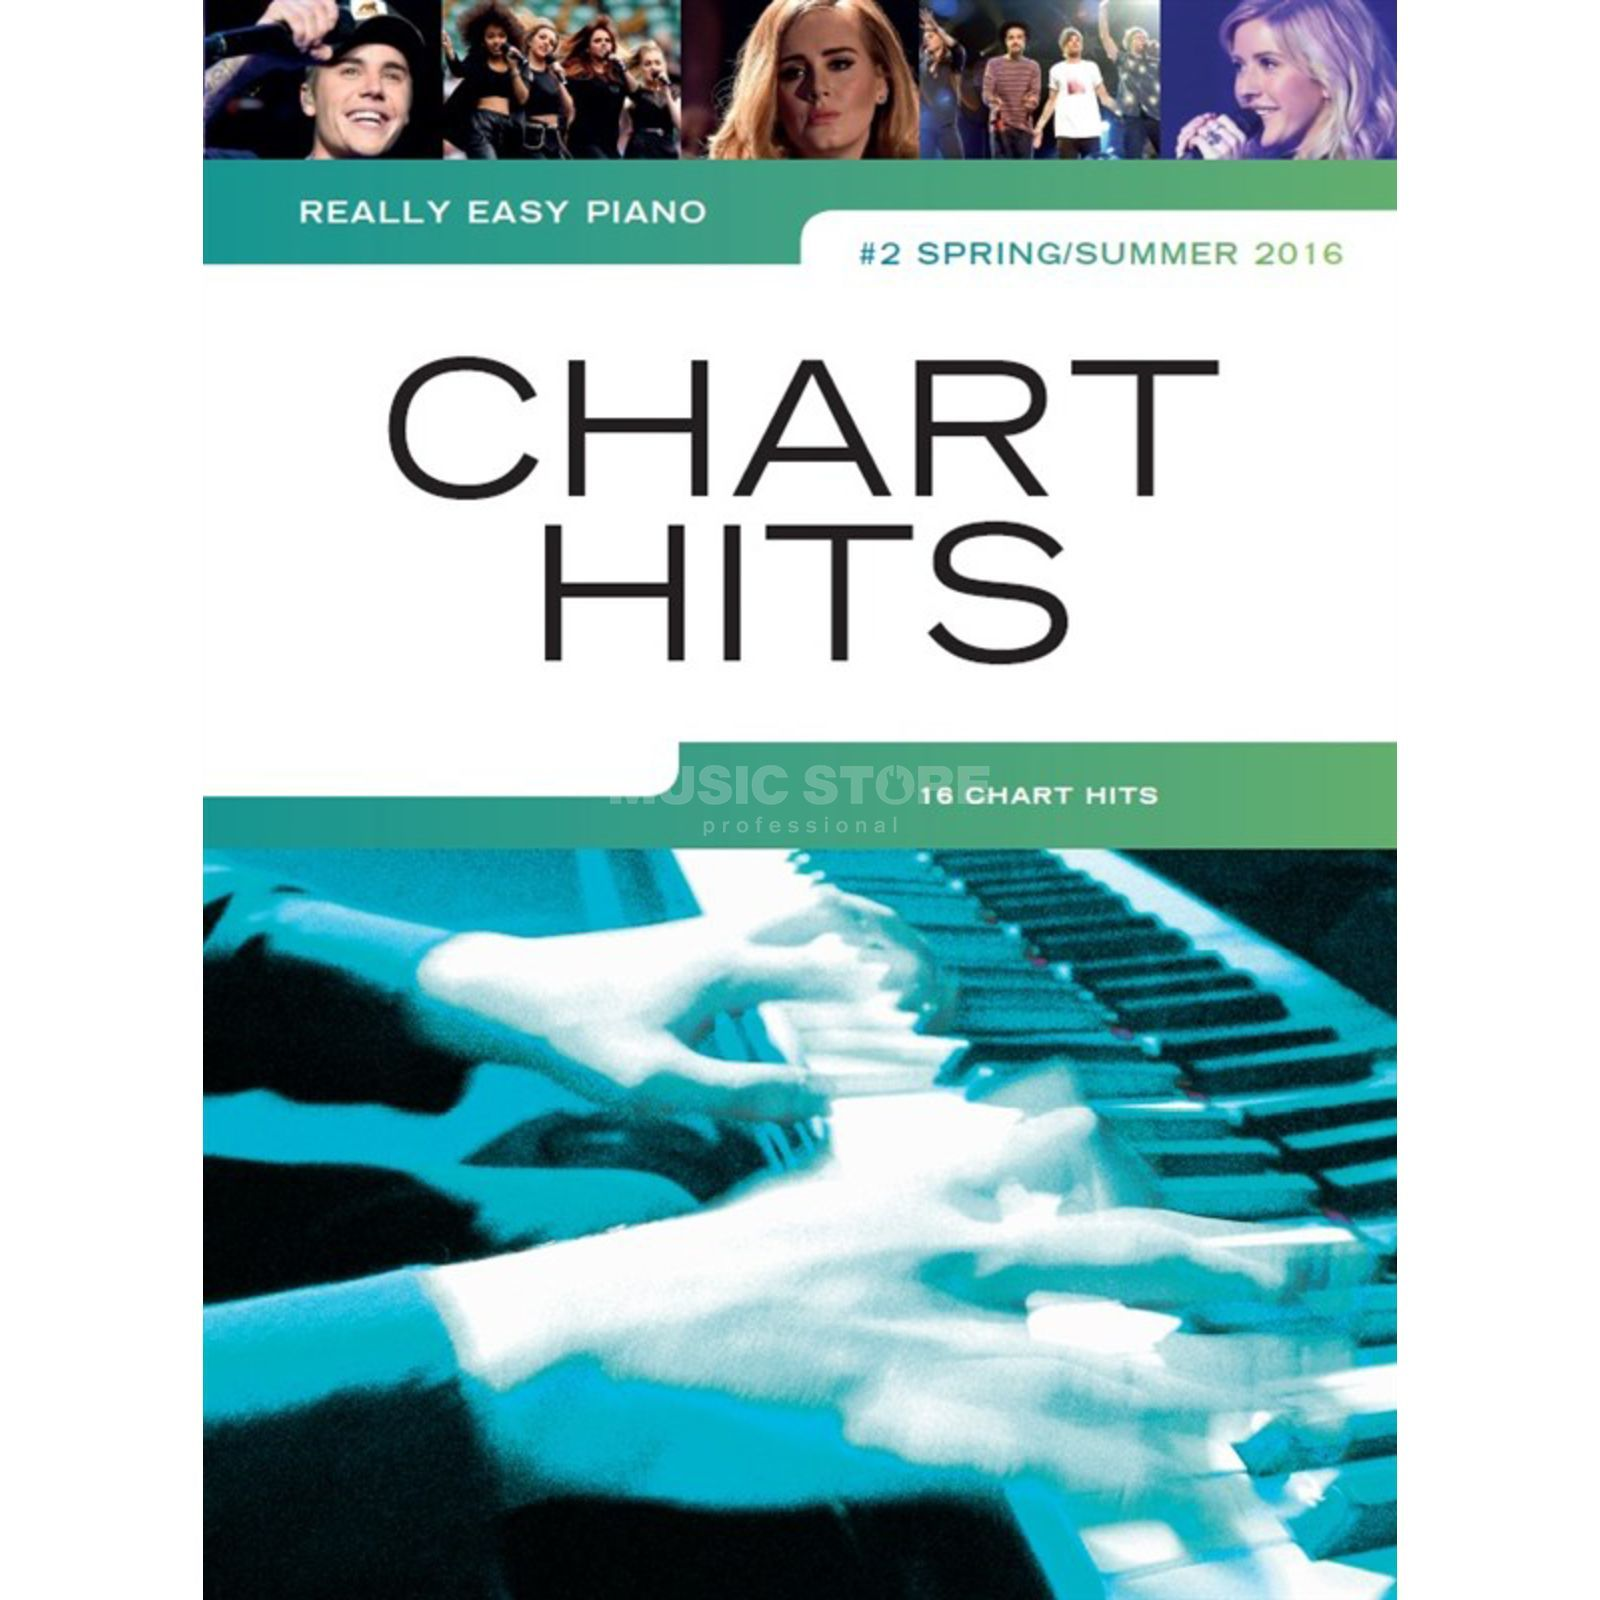 Wise Publications Really Easy Piano: Chart Hits Vol. 2 - Spring/Summer 2016 Produktbillede